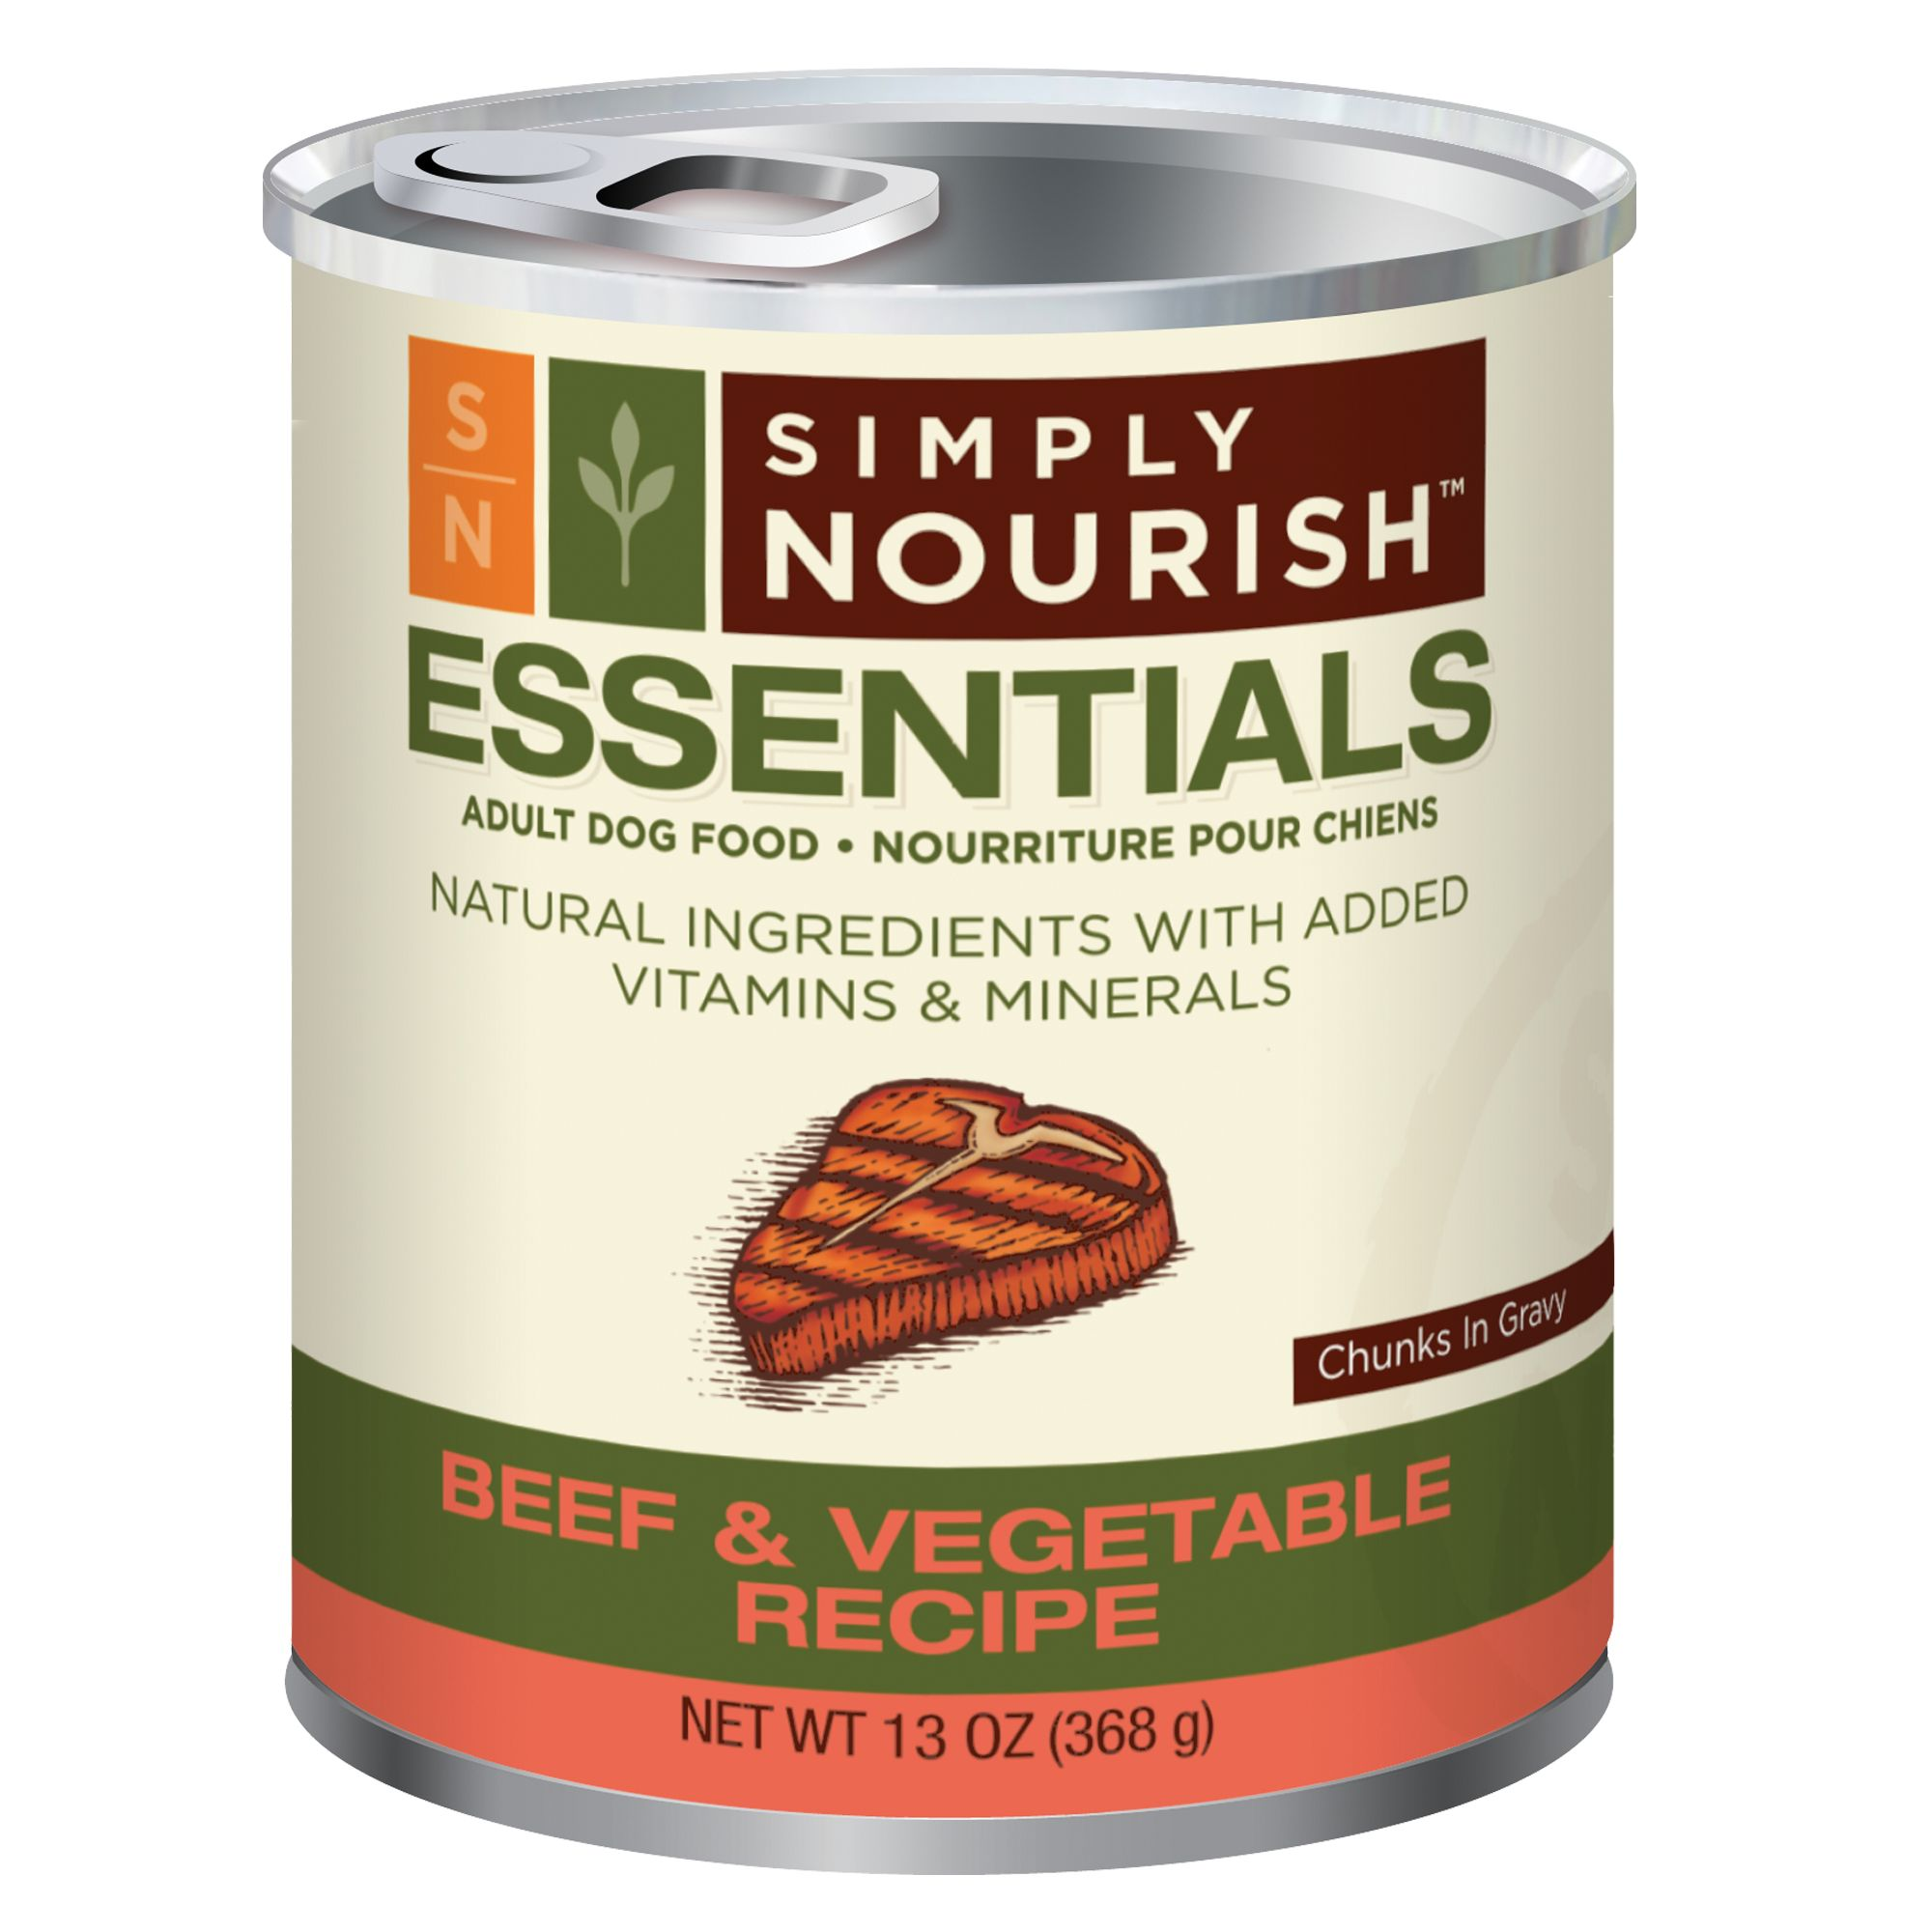 737257611962 UPC - Simply Nourish Essentials | UPC Lookup